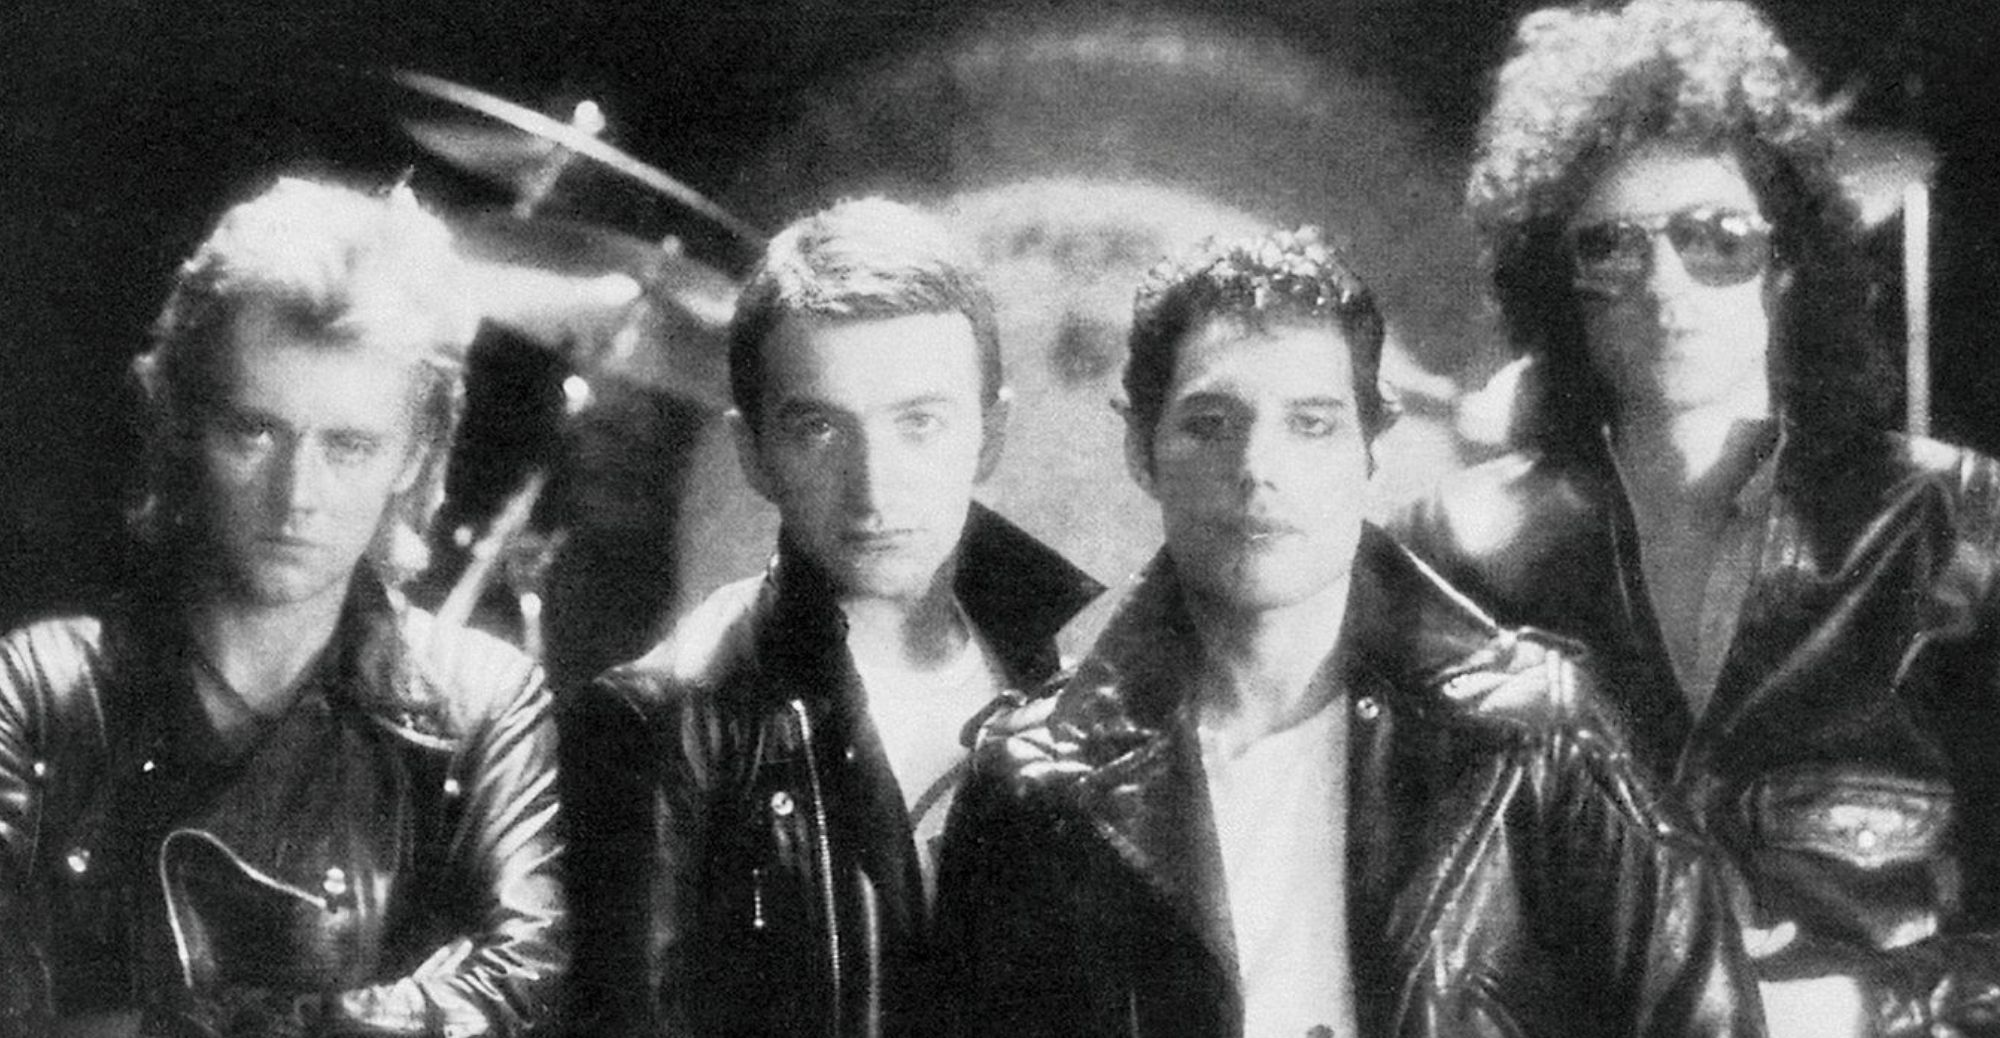 queen the game 1980